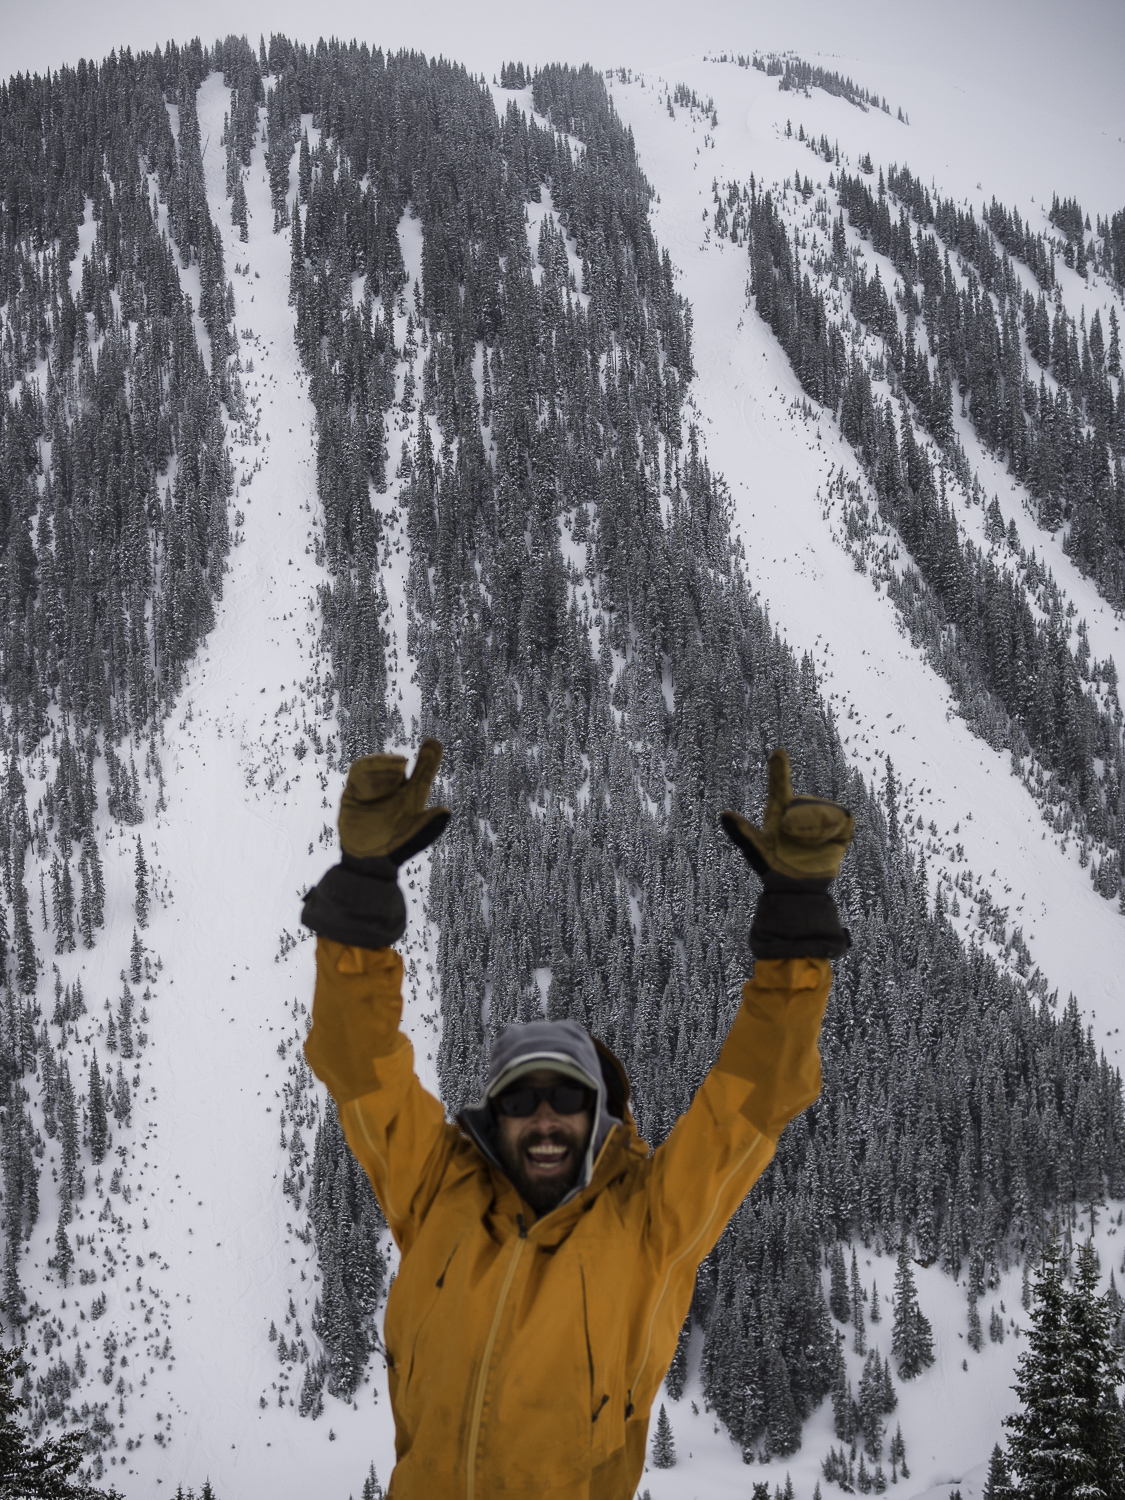 Storm Skiing at its Finest - Photobomb Todd